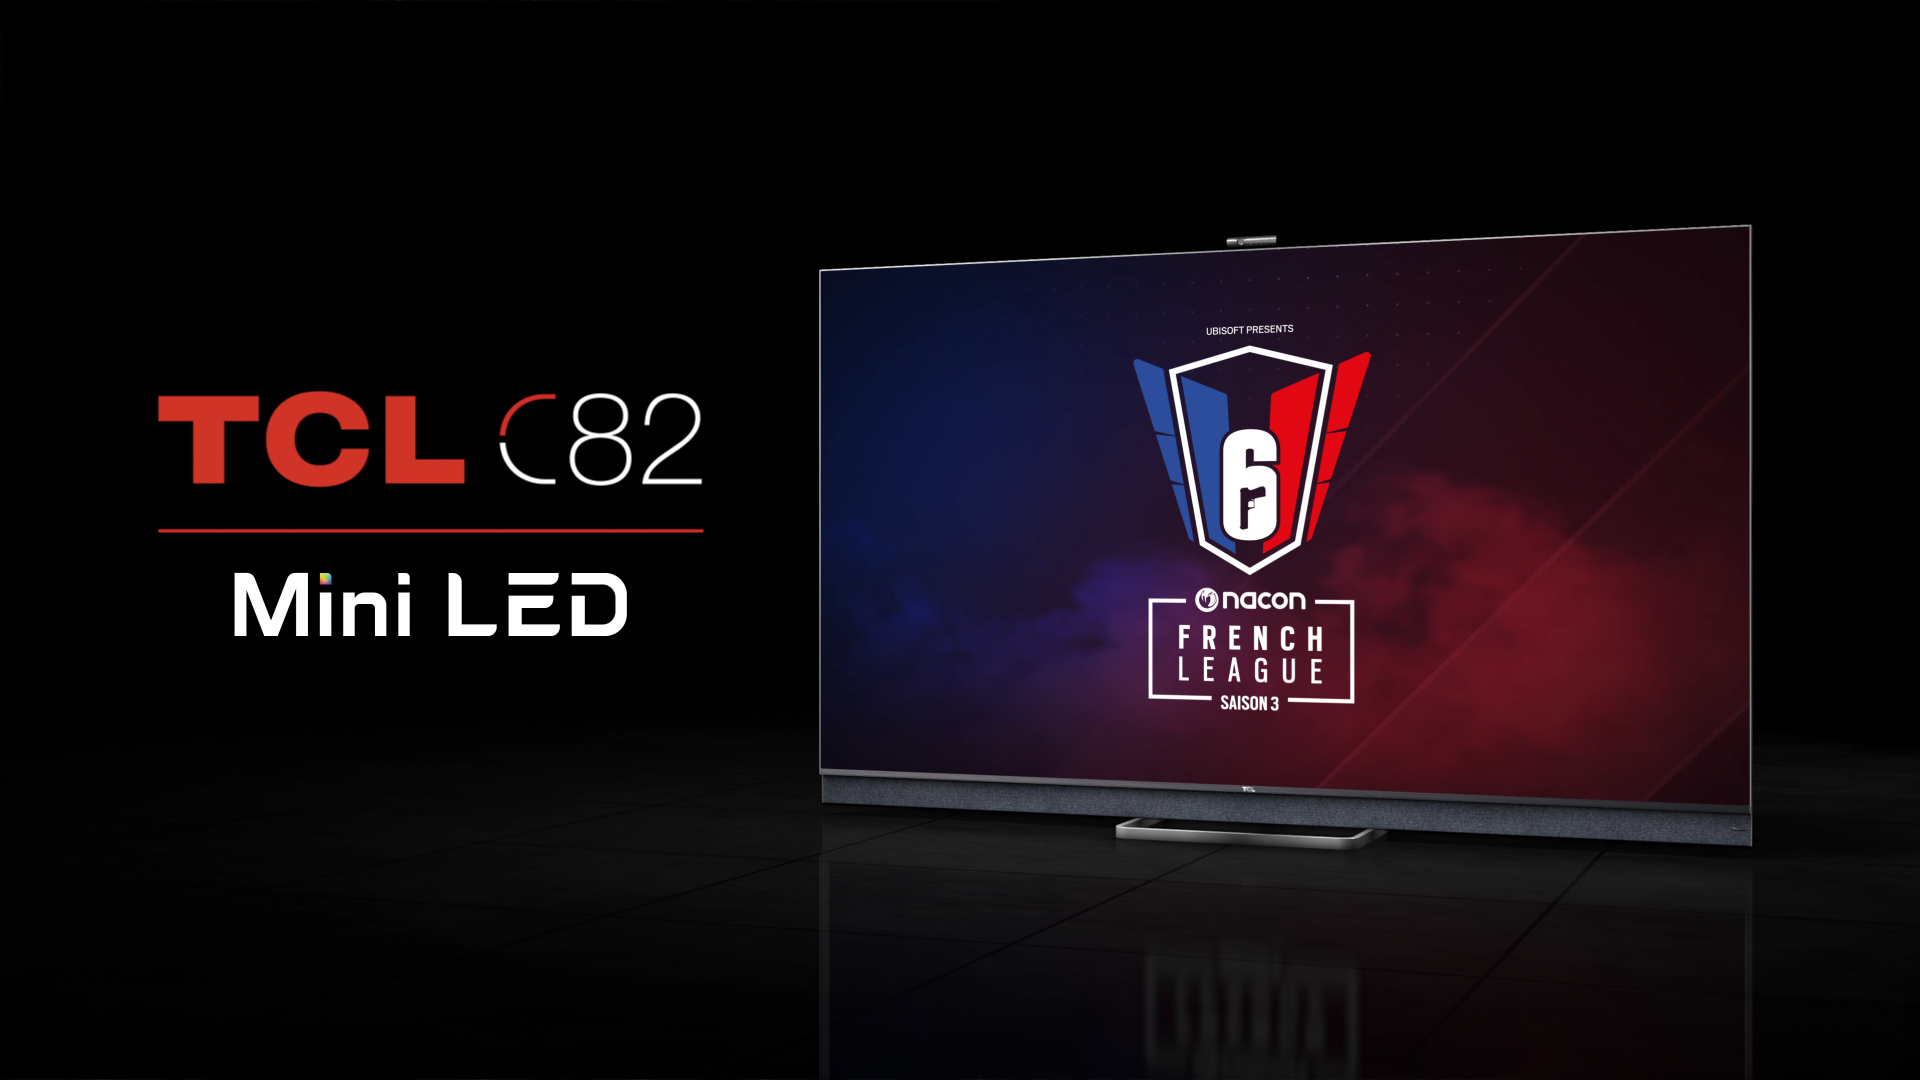 tcl-tv-r6-french-league